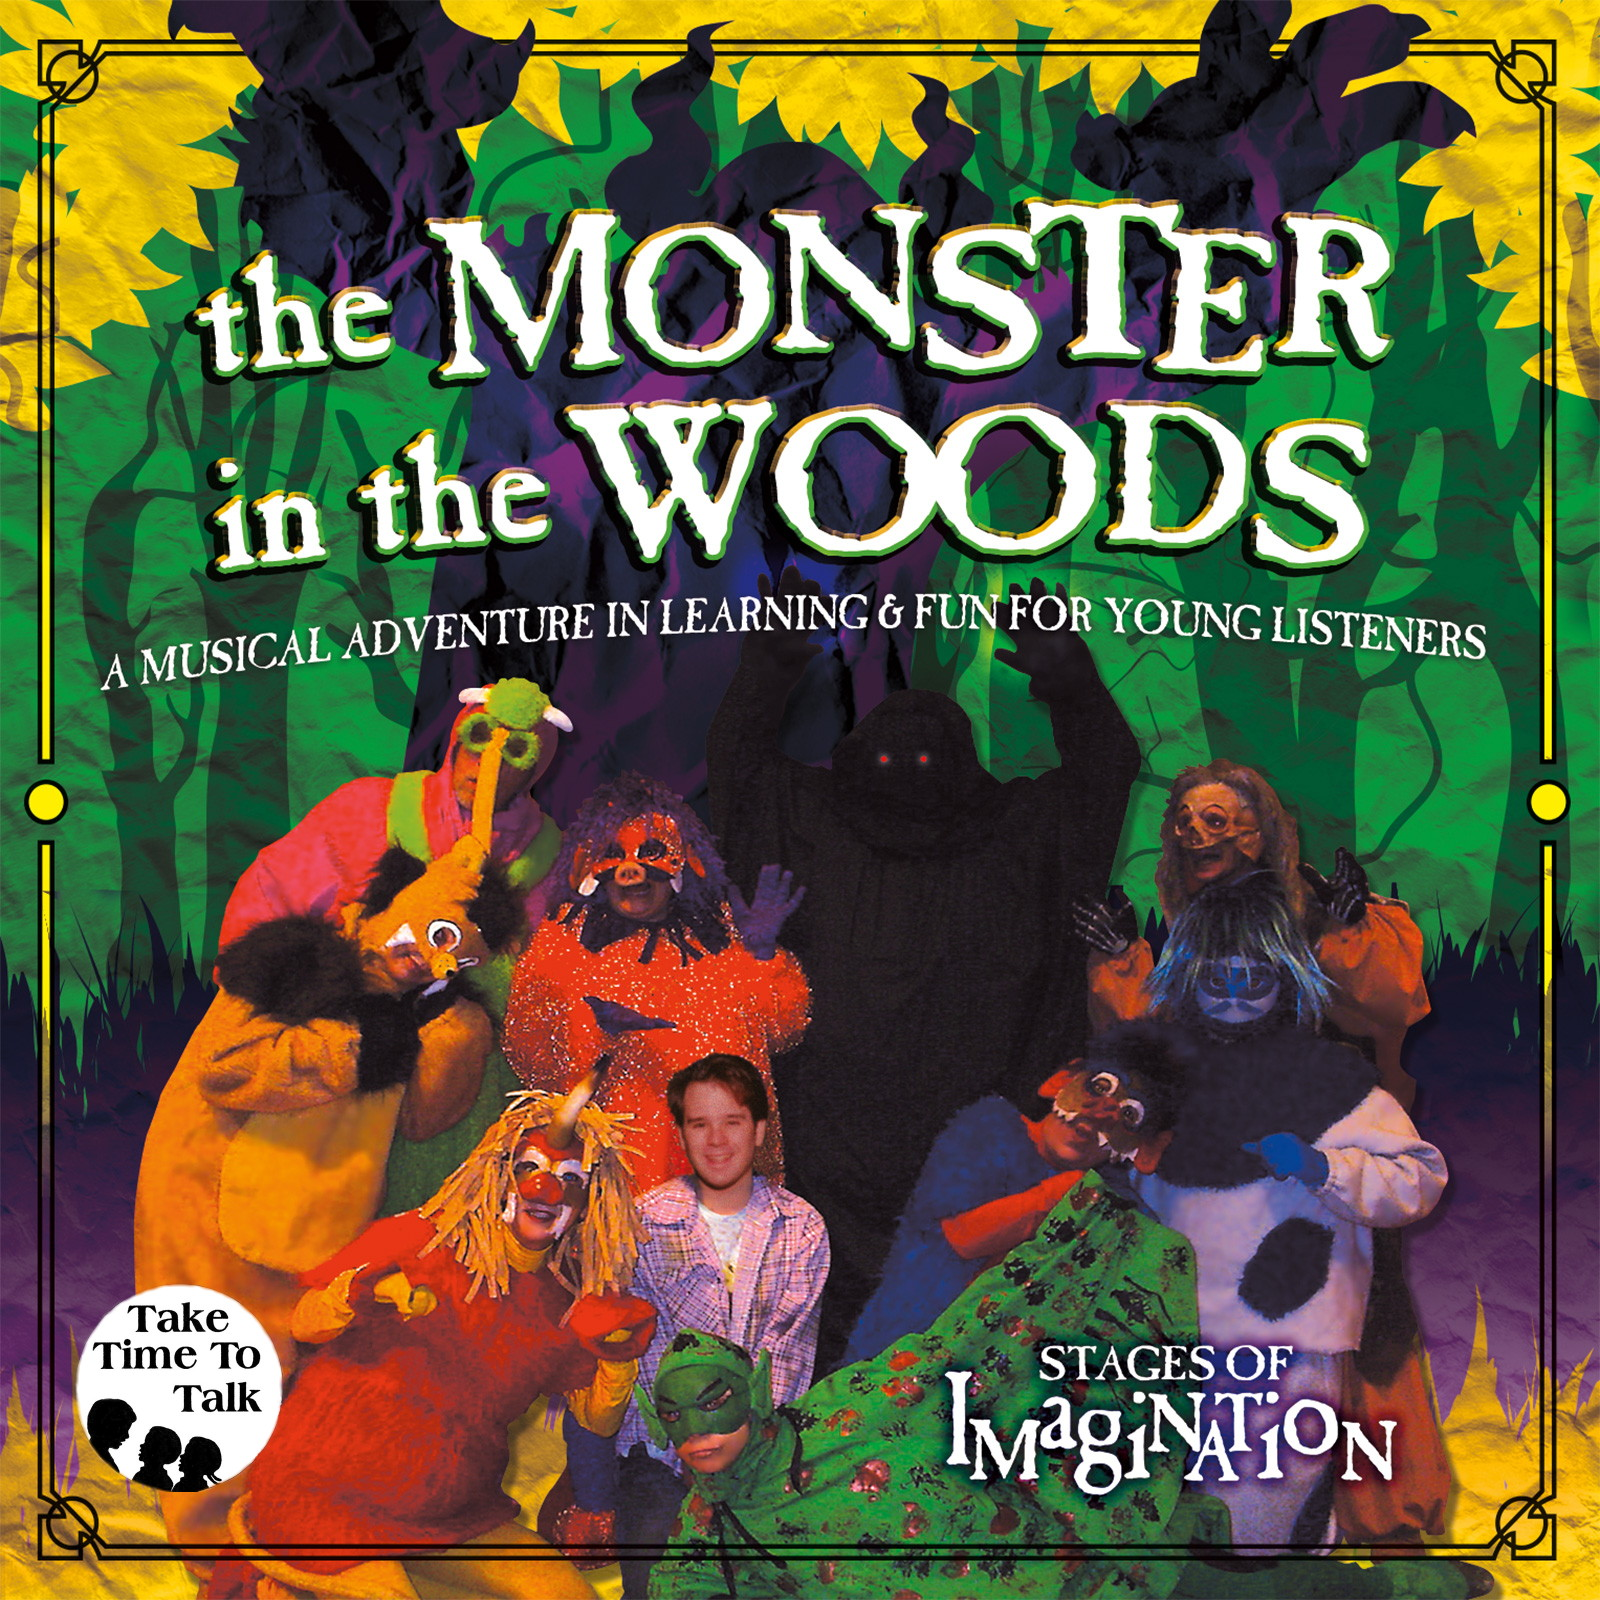 The Monster in the Woods